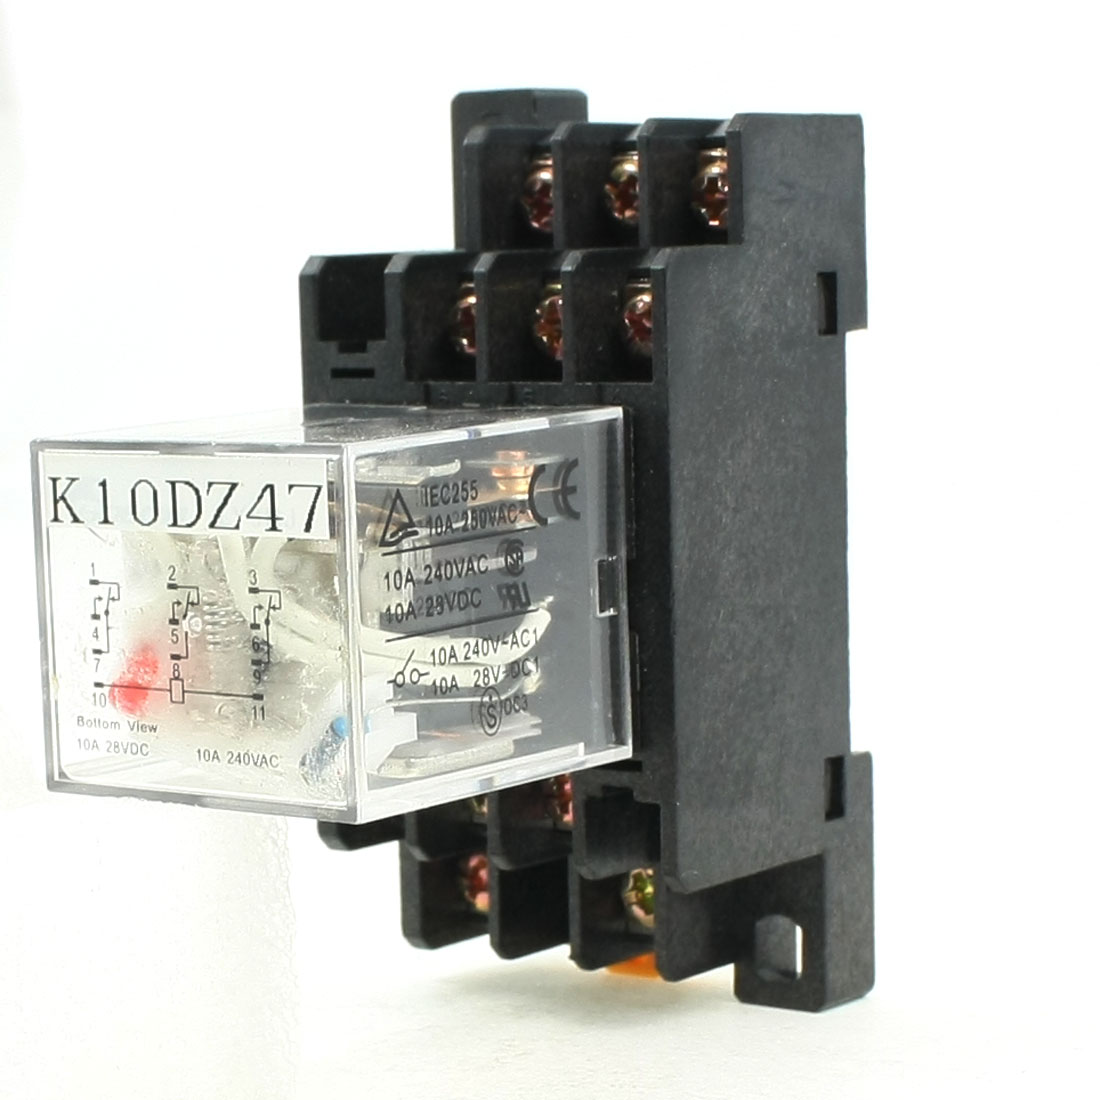 AC220V Coil 3PDT Electromagnetic Power Relay AC220V 5A 250VAC/28VDC w Base